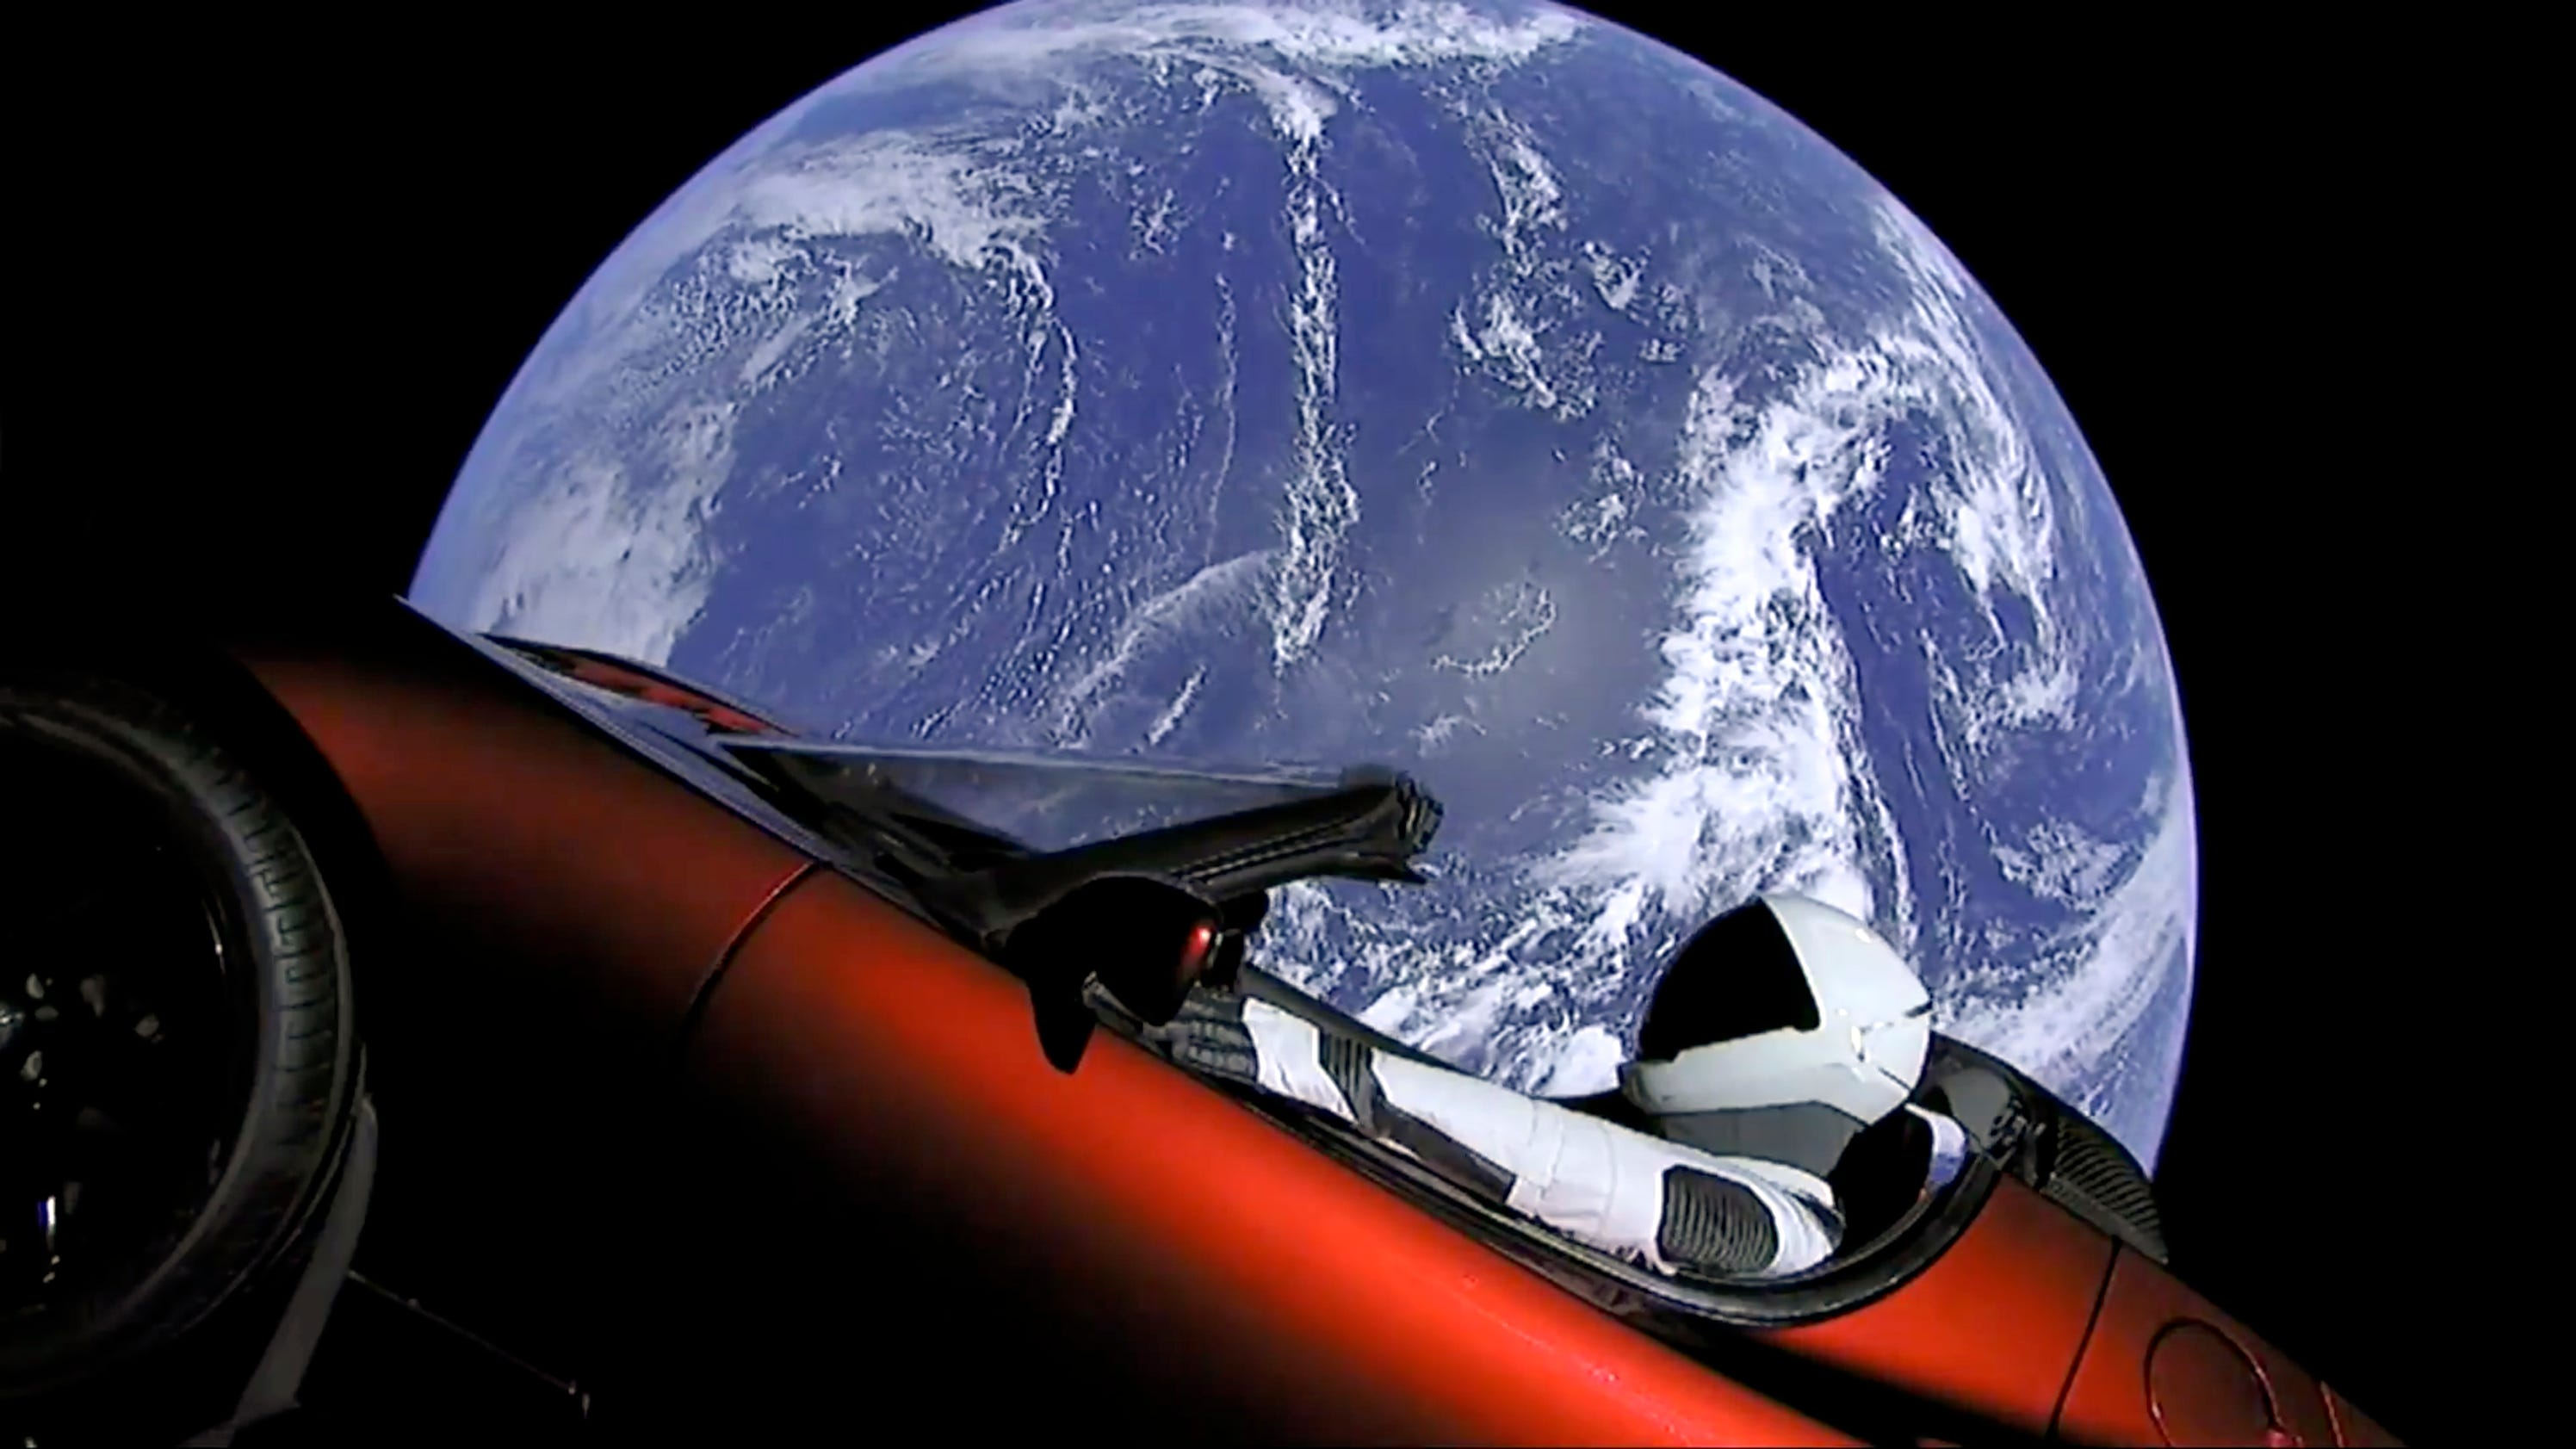 spacex live stream ride with tesla 39 starman 39 as it orbits space. Black Bedroom Furniture Sets. Home Design Ideas